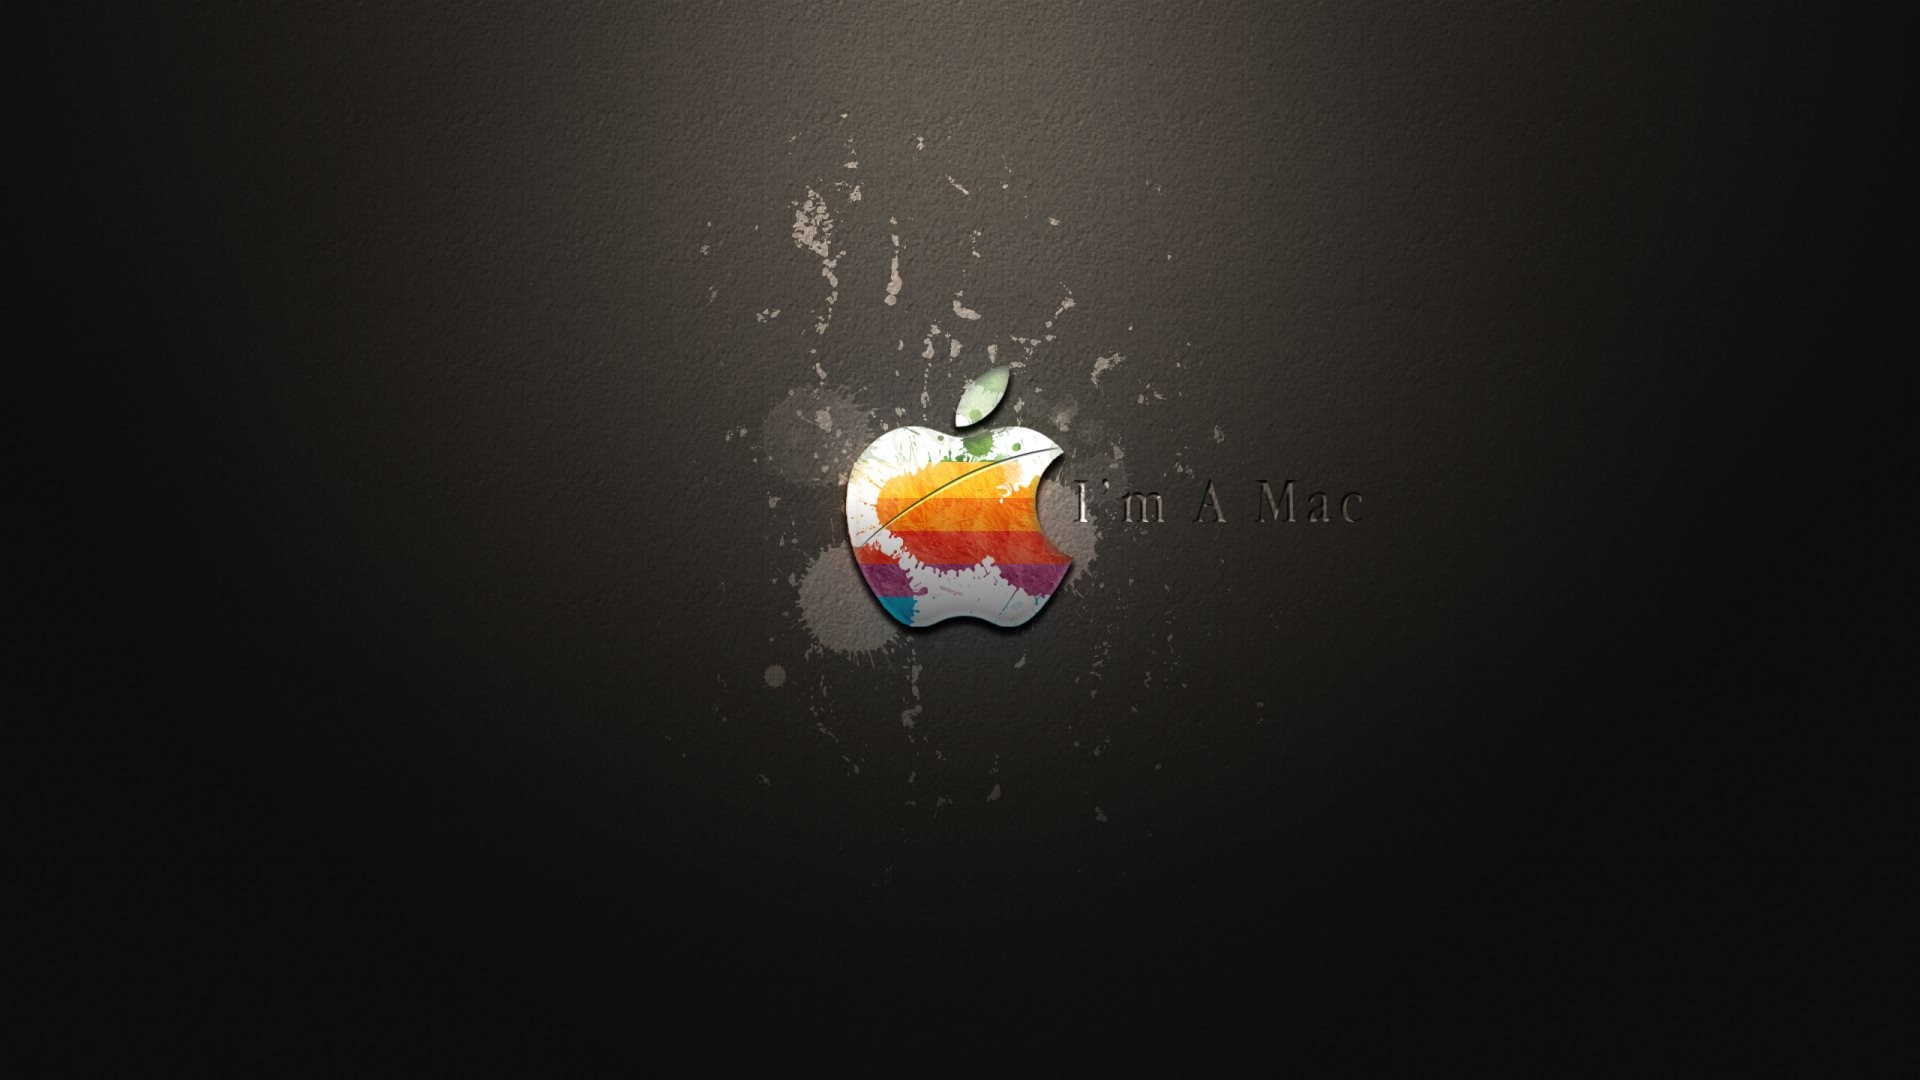 HD Wallpapers For Mac 1280x800 ·①